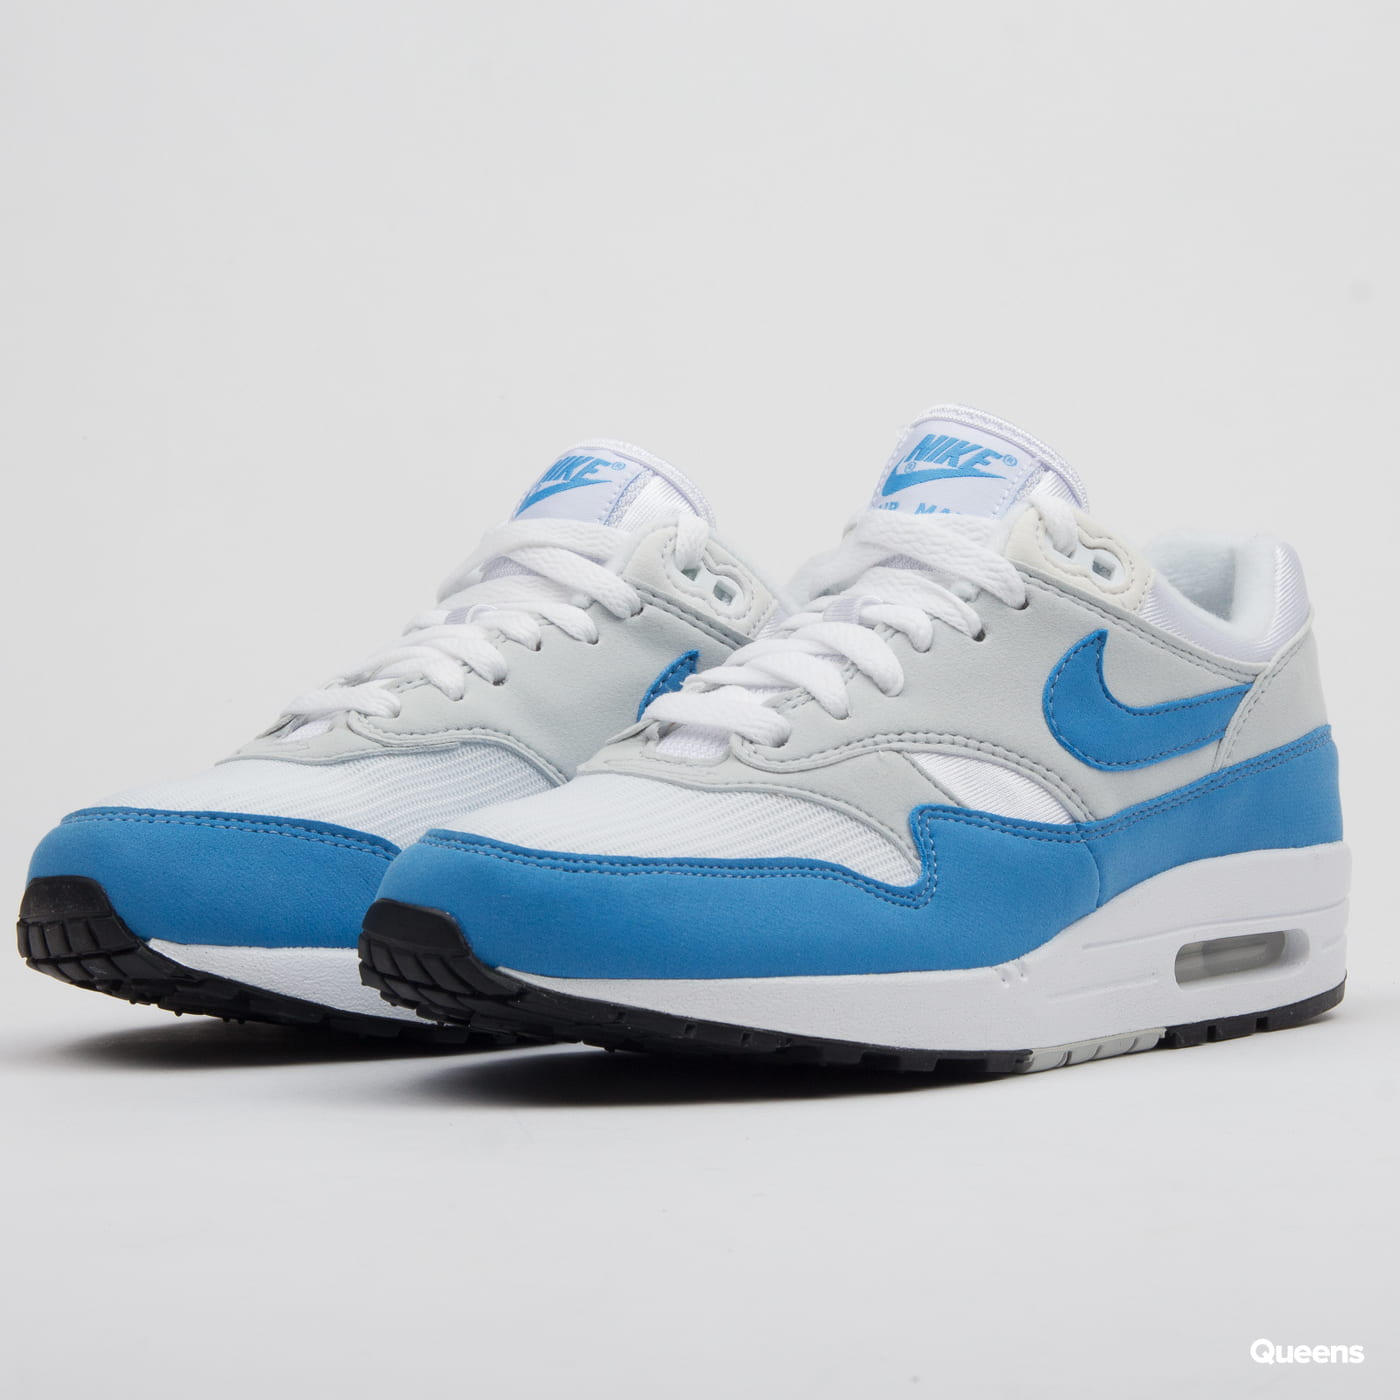 Nike Air Max 1 W Ess University Blue BV1981 100 Buy Online